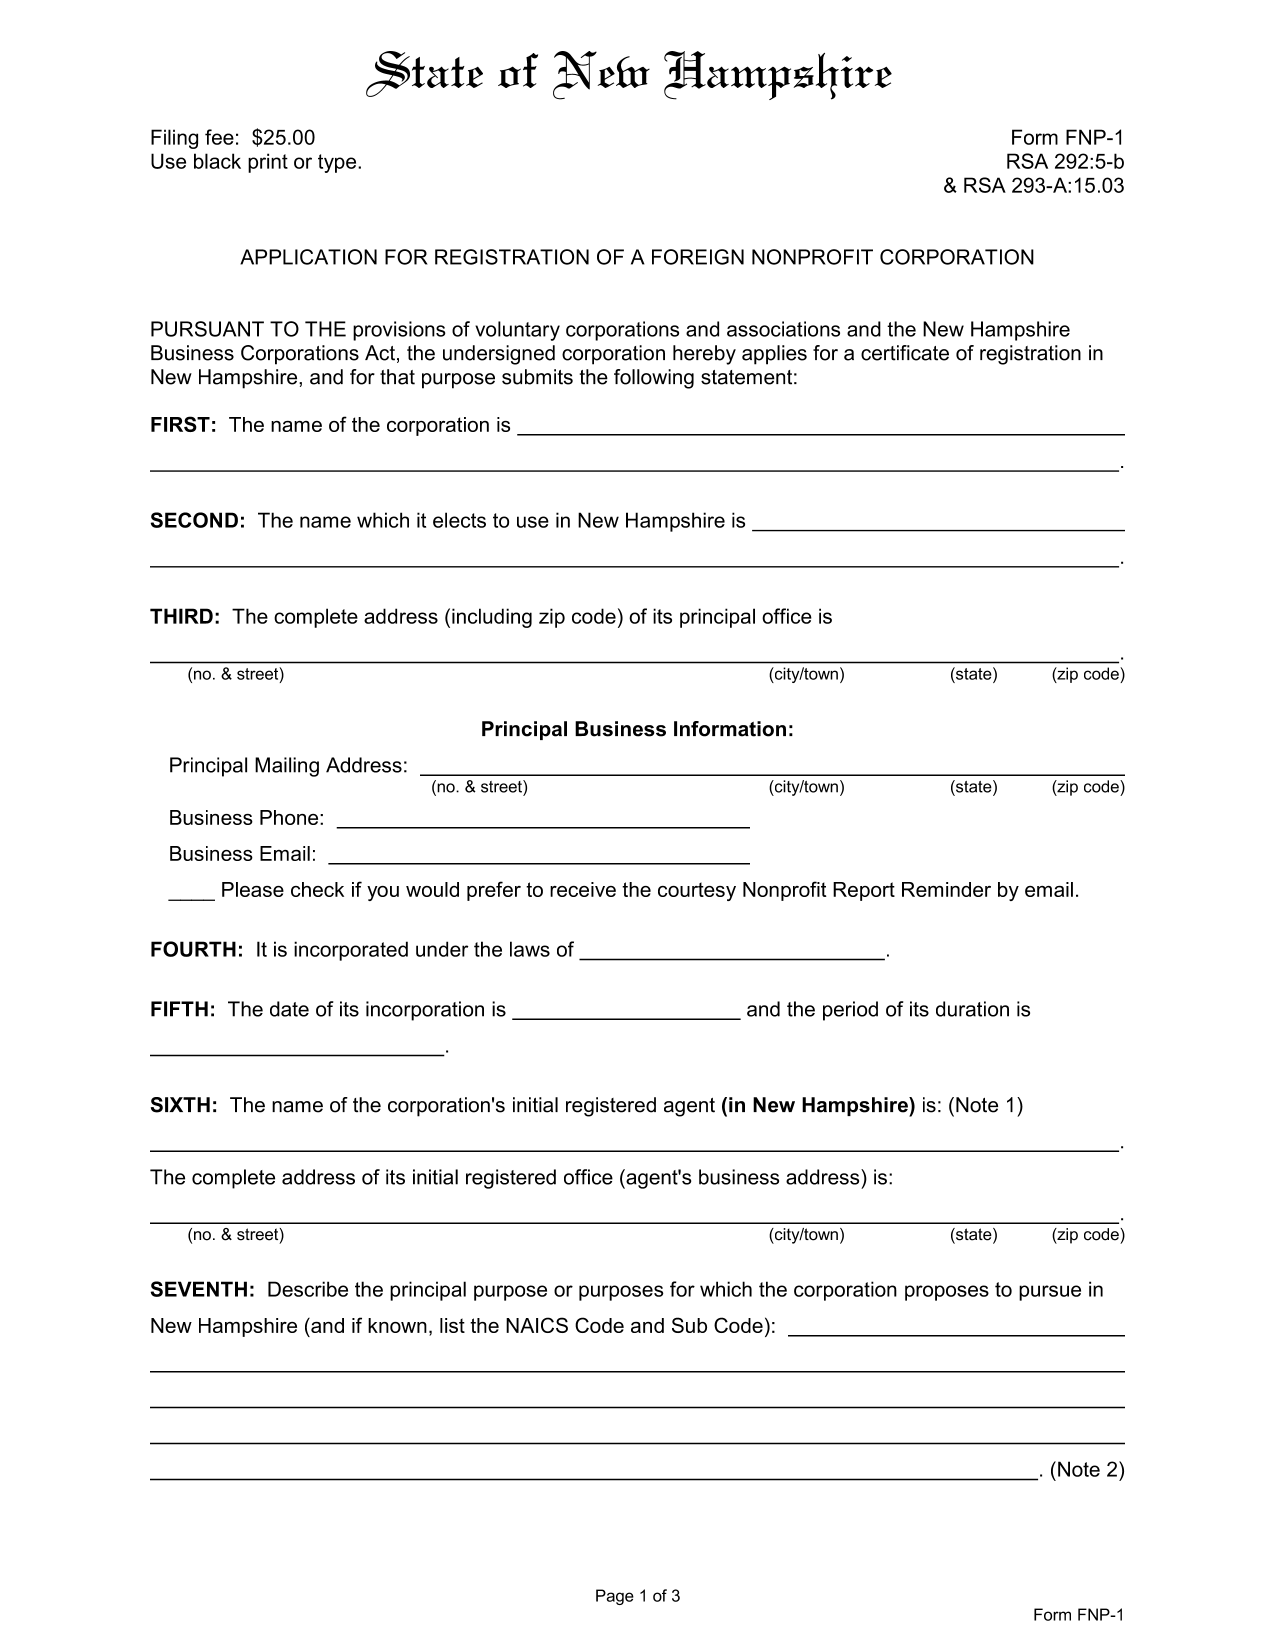 application-for-registration-of-a-foreign-nonprofit-corporation-